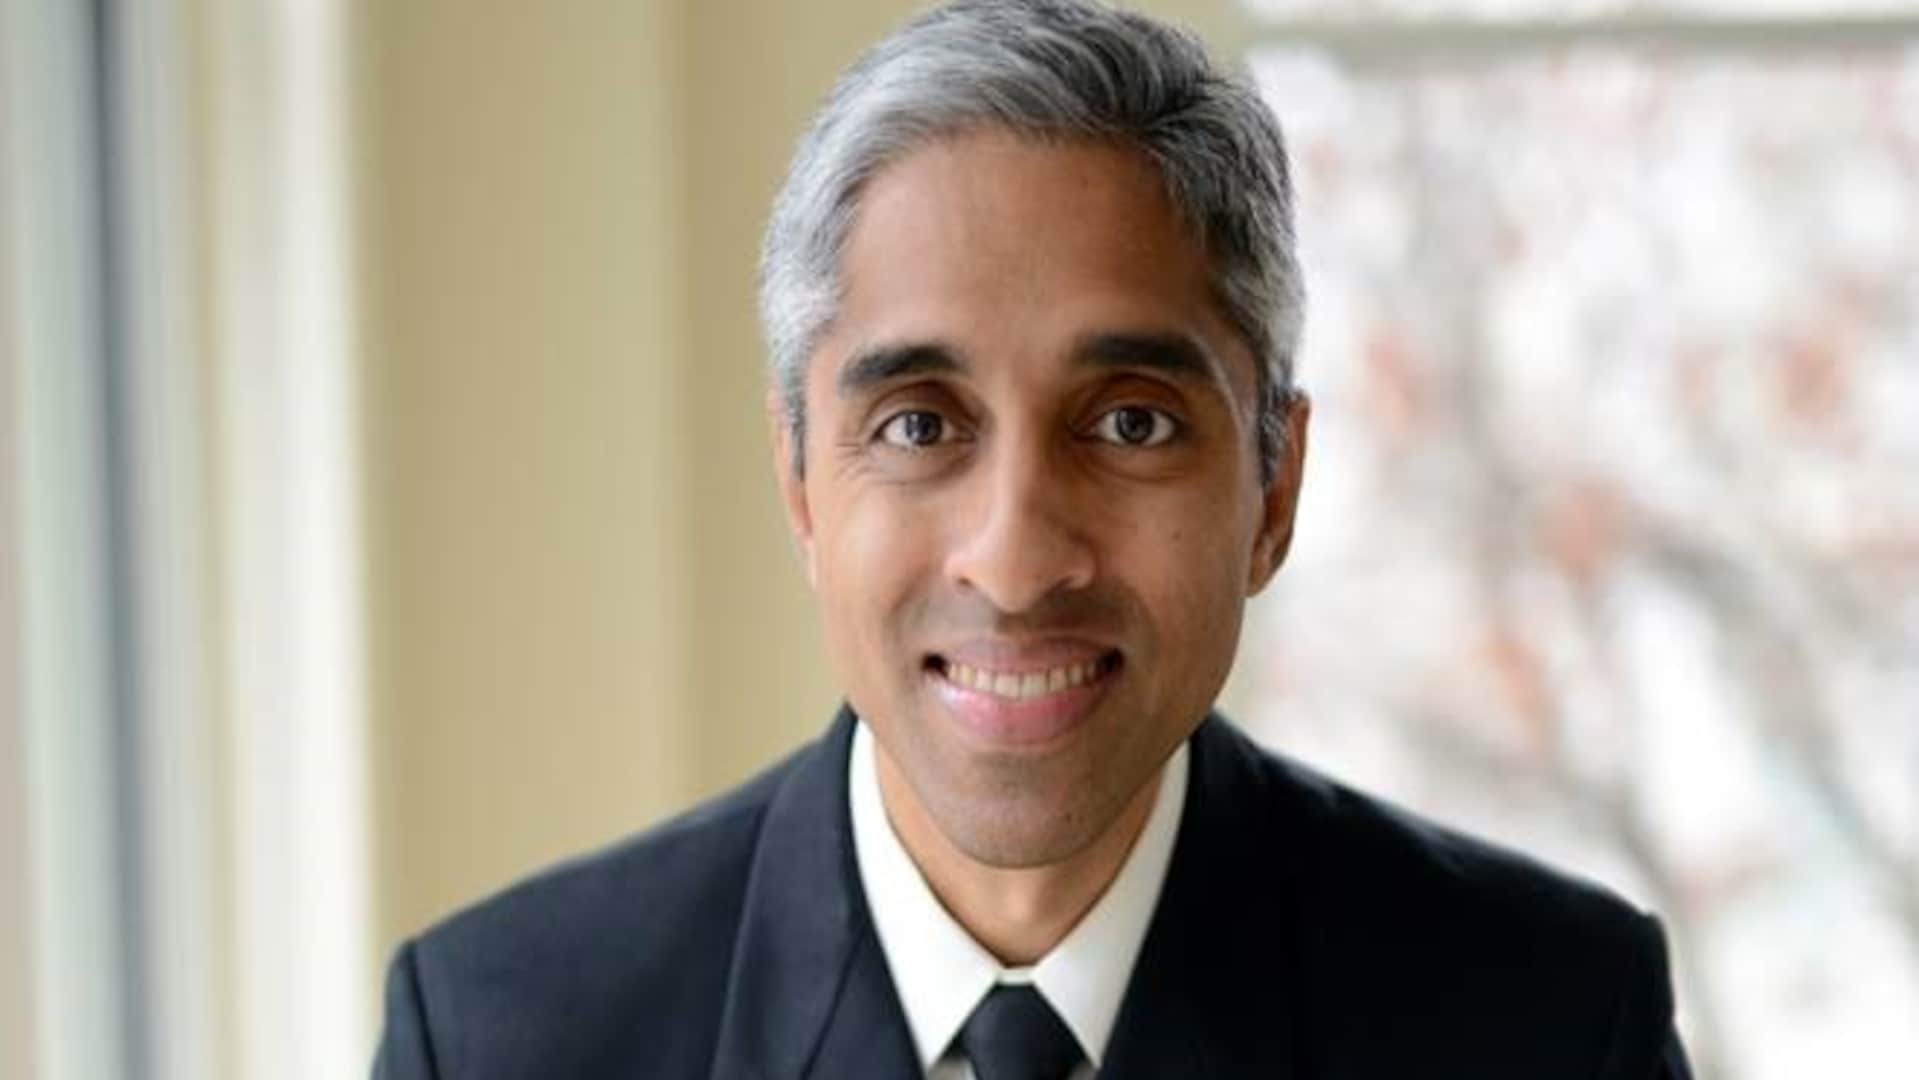 The Q&A: Dr. Vivek Murthy on fighting loneliness during COVID-19 pandemic